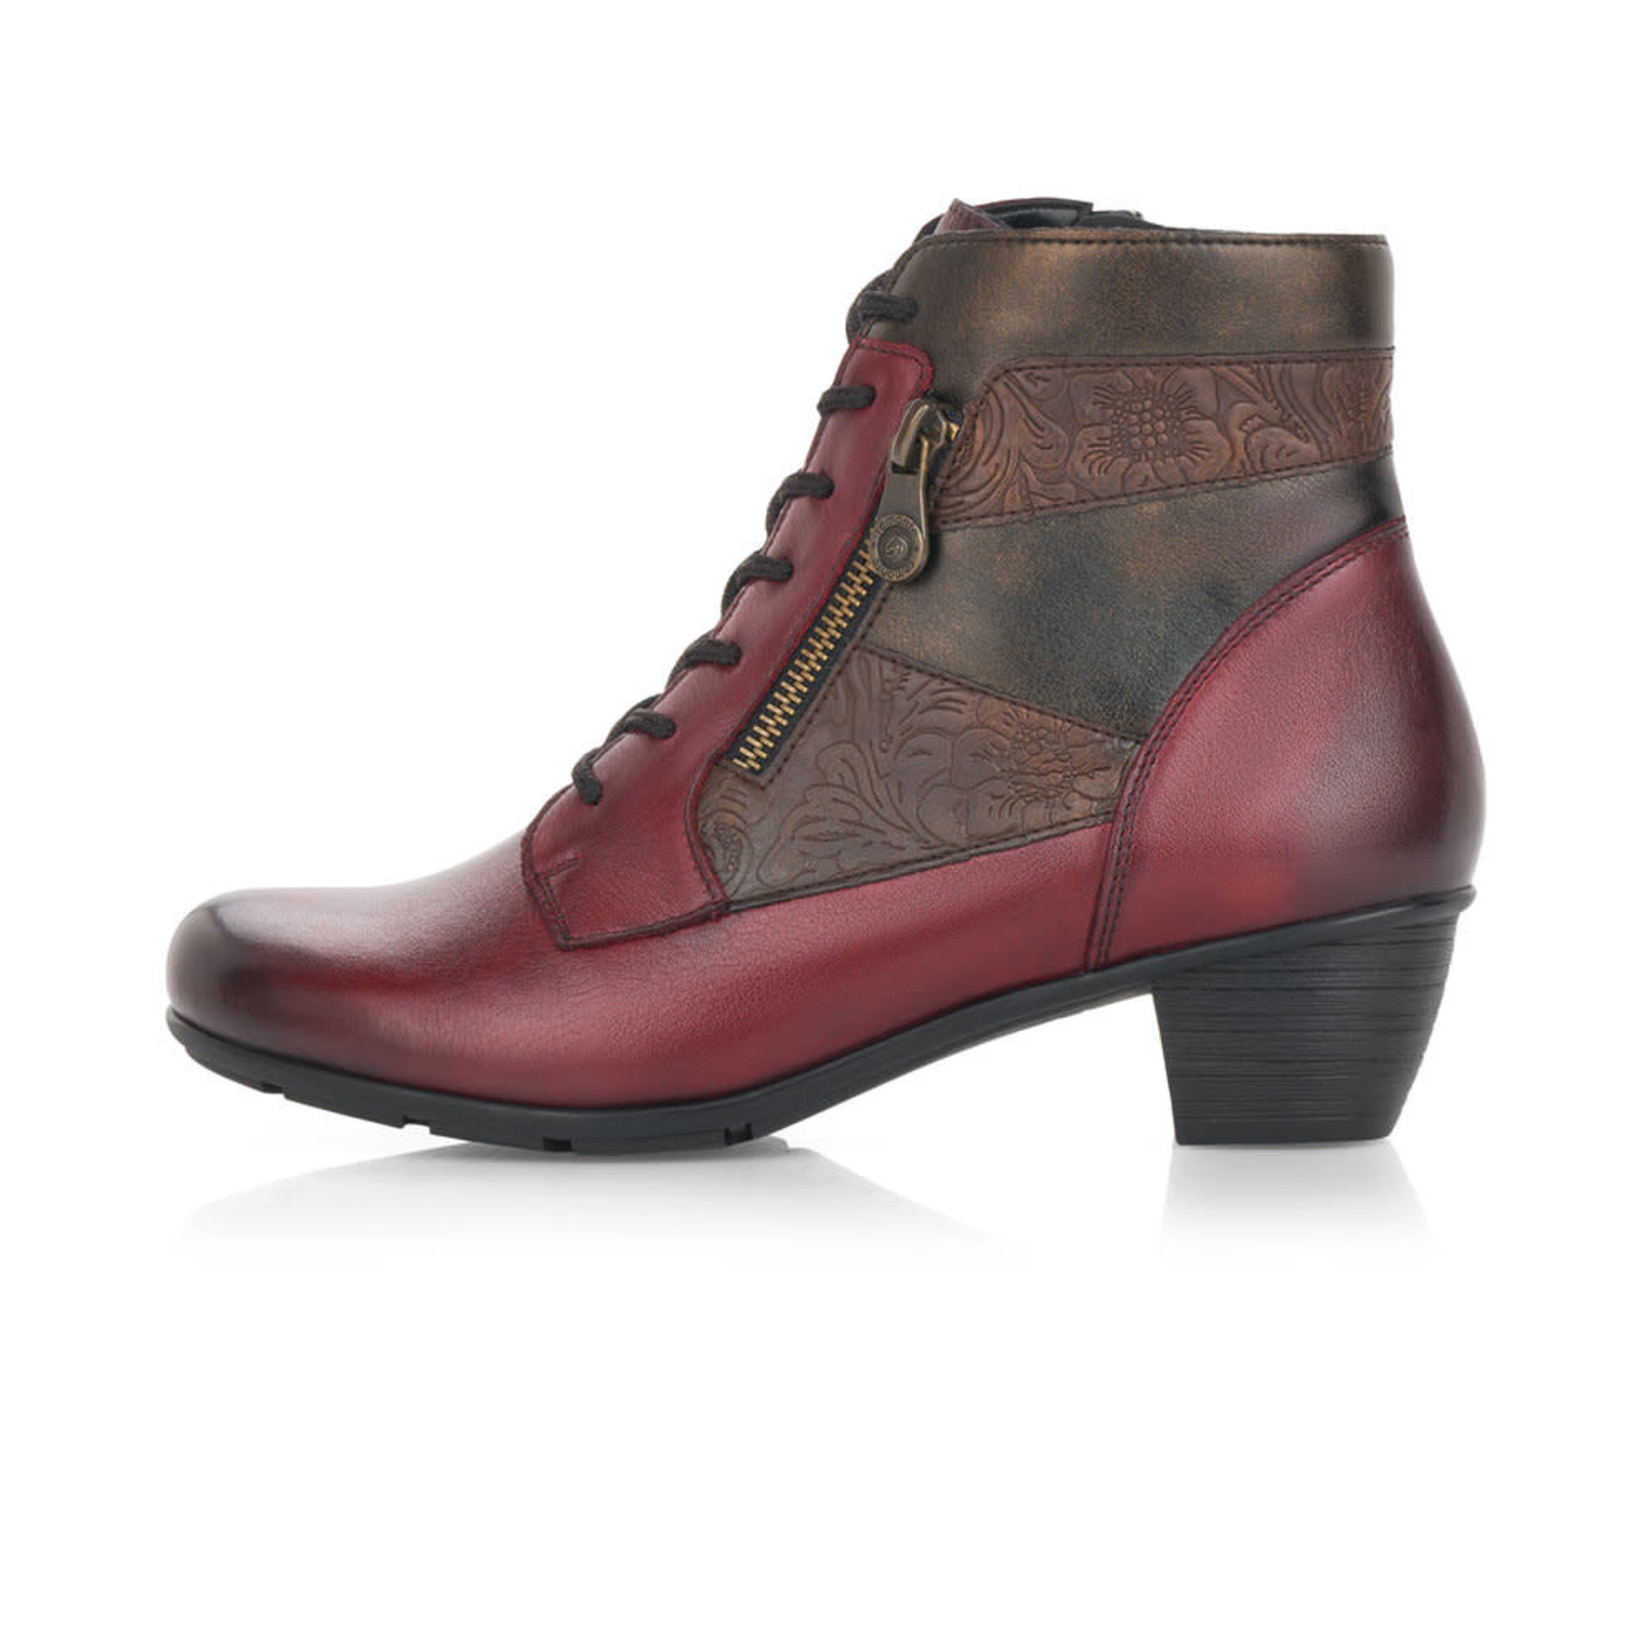 Remonte Remonte R7570-35 only size 42